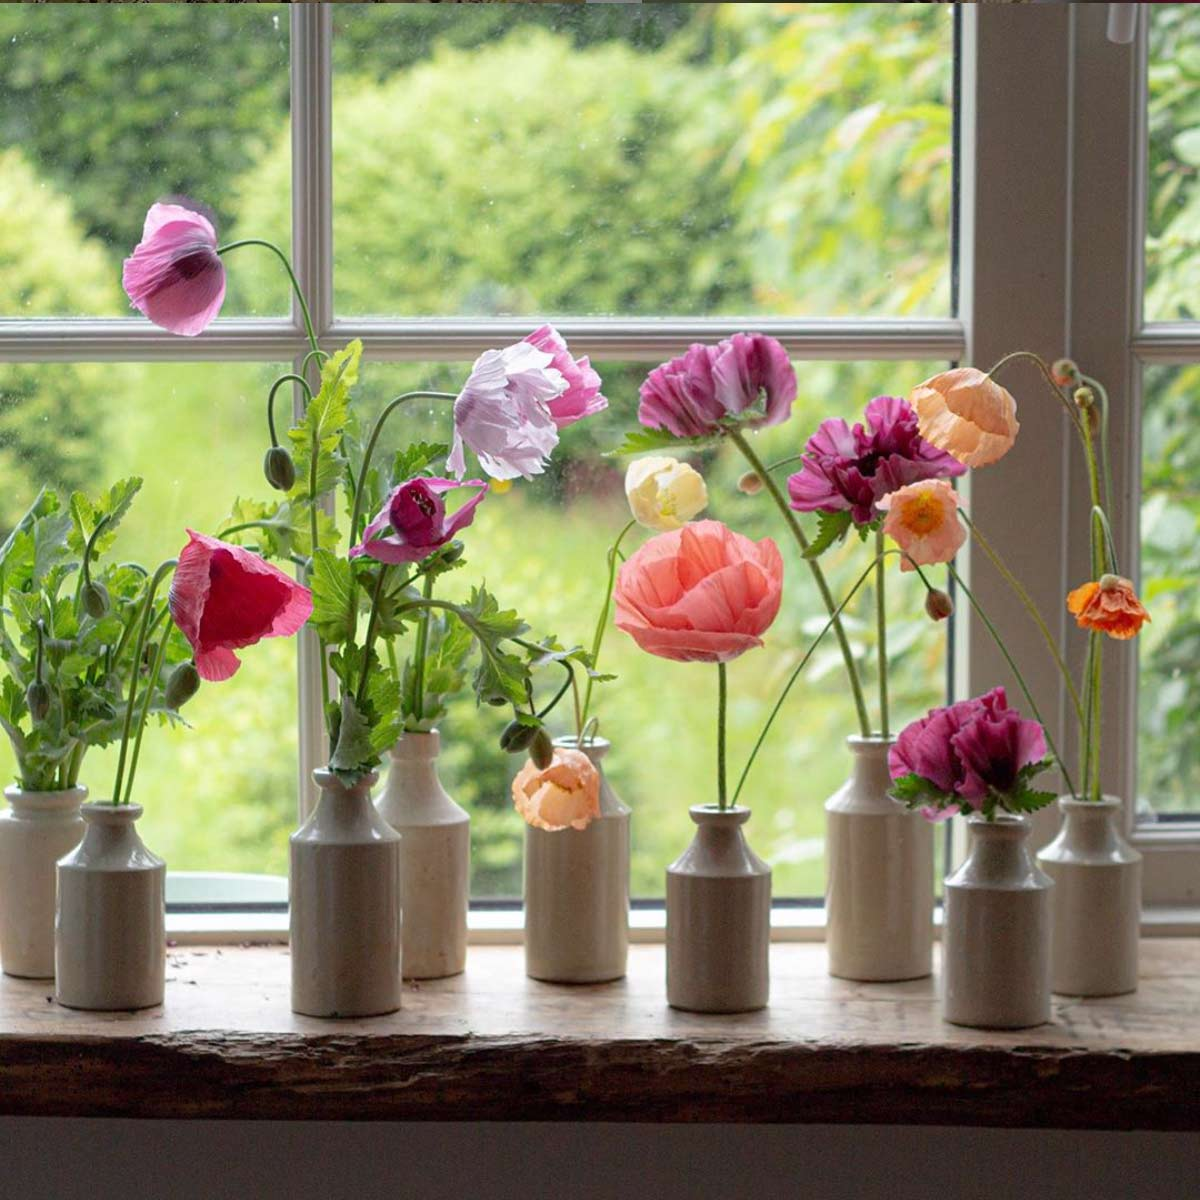 a windowsill with small vases filled with poppies